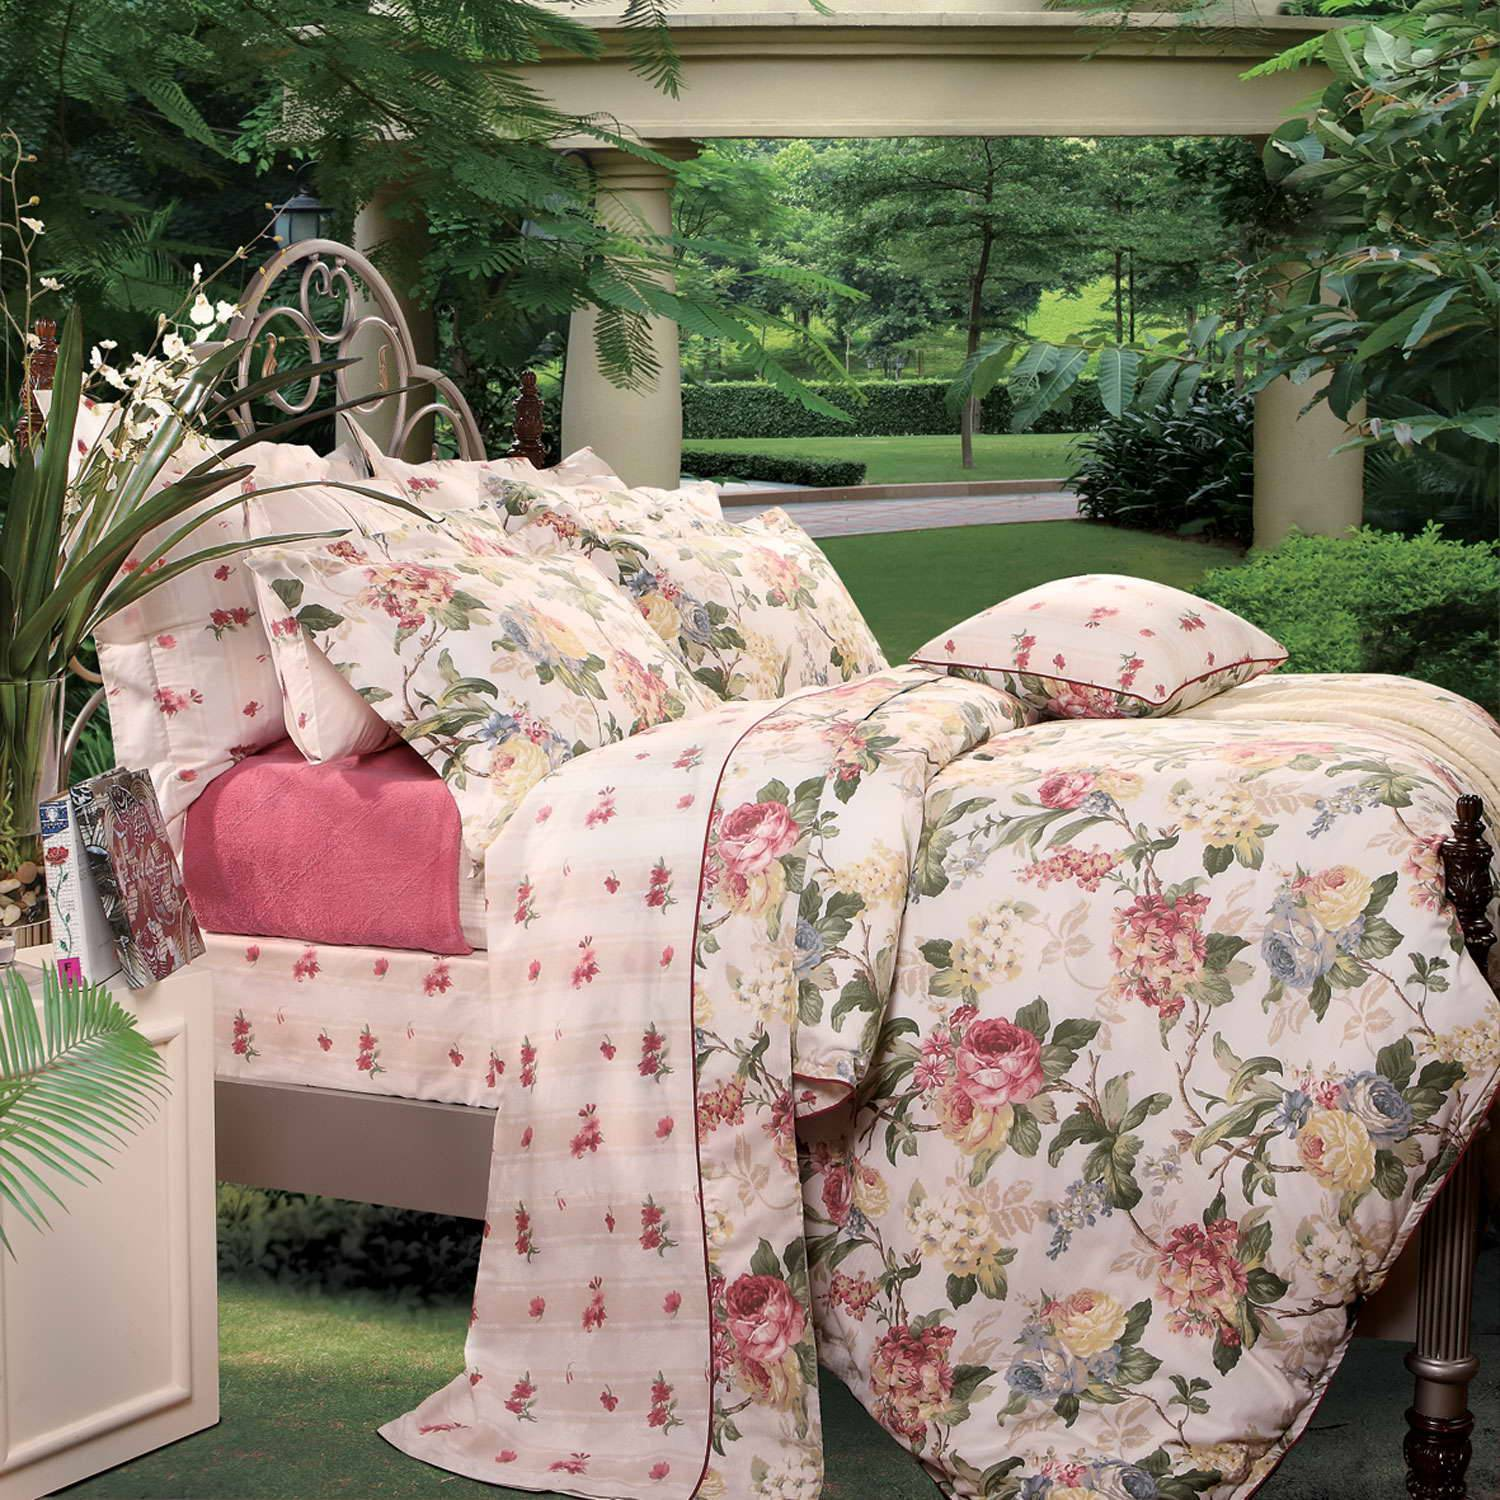 Fuanna Flower Shade 3 Pieces Set Cotton Printed Queen Duvet Cover and Pillow Sham